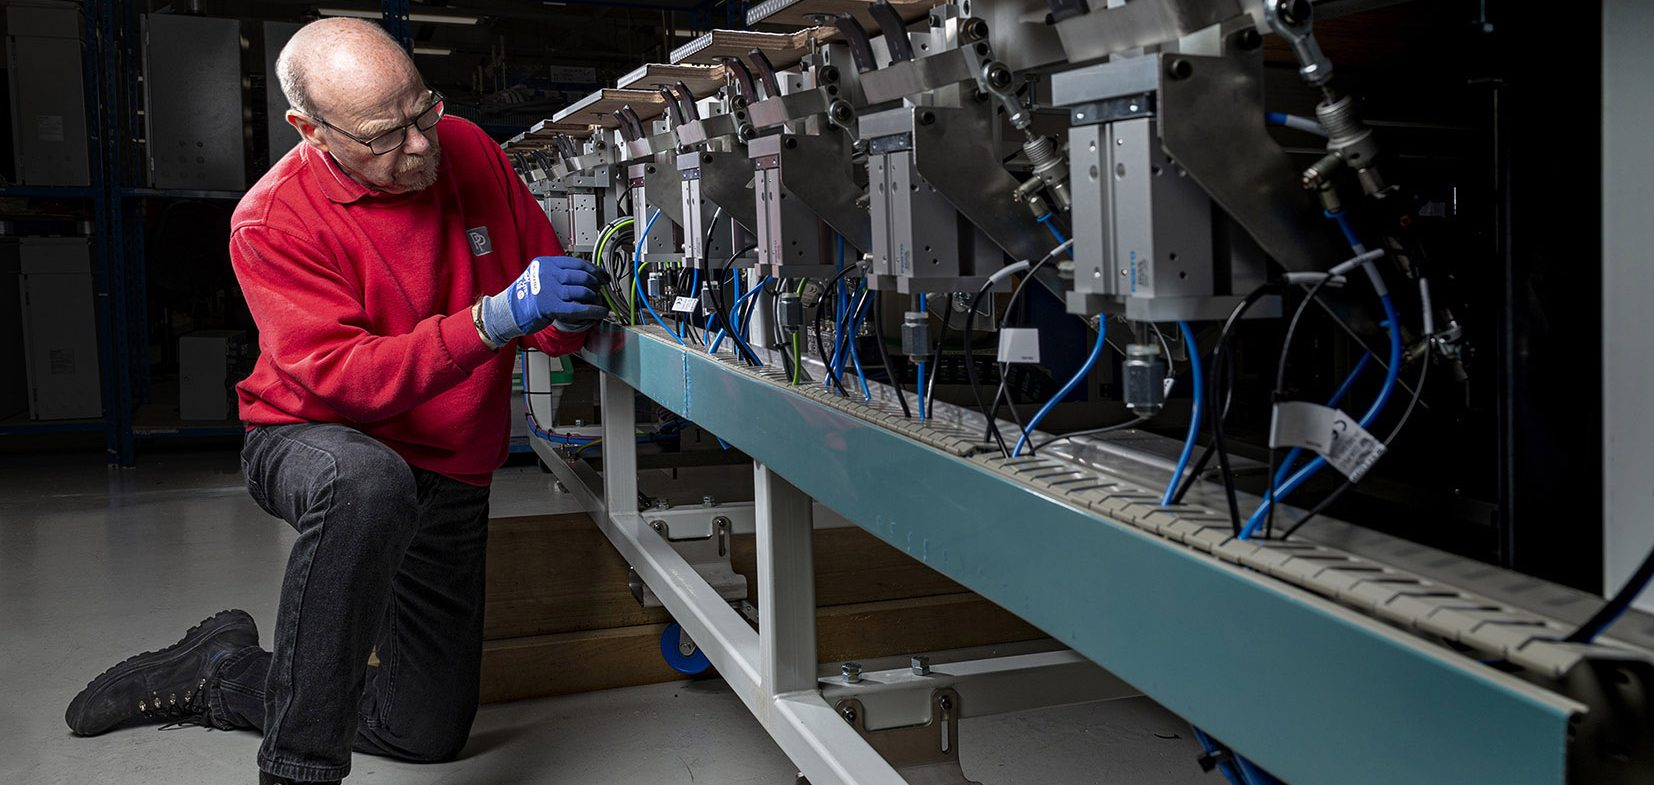 PP Control & Automation (PPC&A) UK manufacturing - reshoring thought leadership